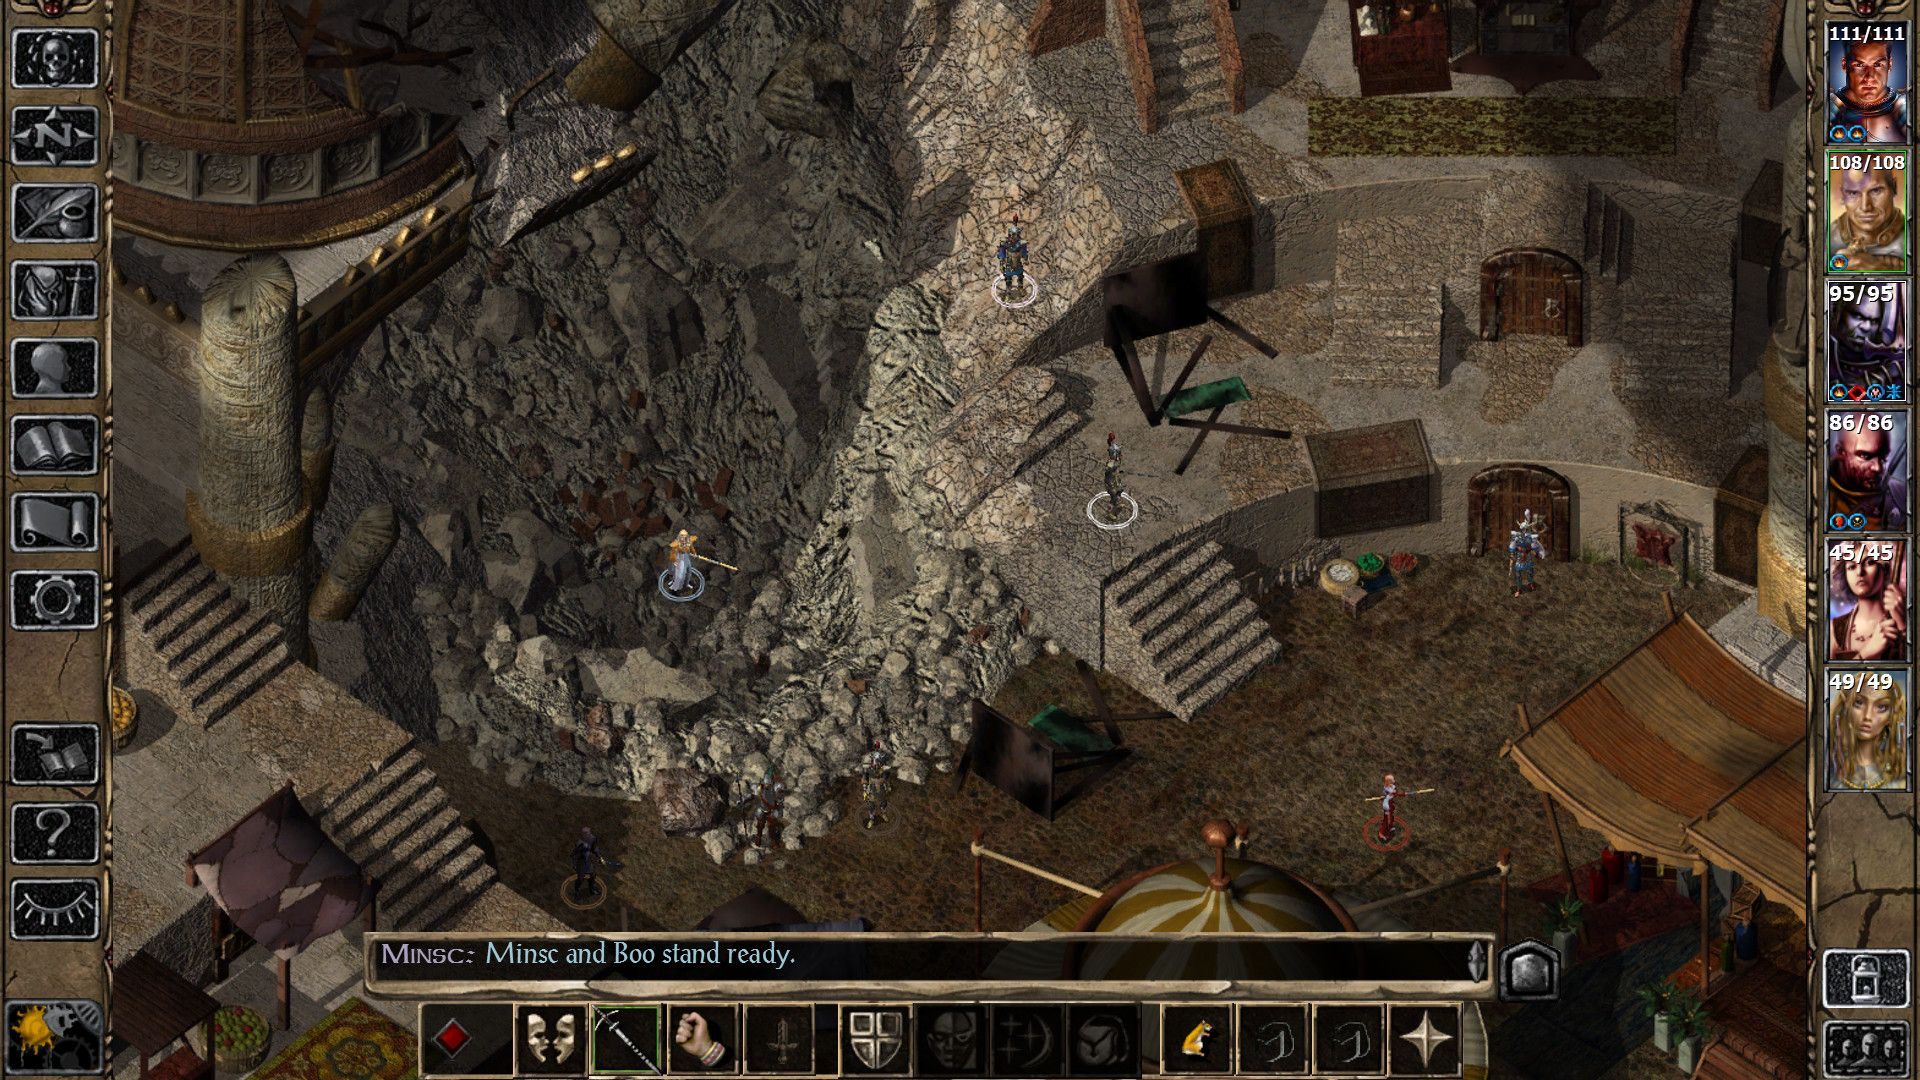 Rumor Larian Studios Has Acquired Baldur S Gate License And Is Working On Baldur S Gate 3 Mass Effect Larian Studios Android Games